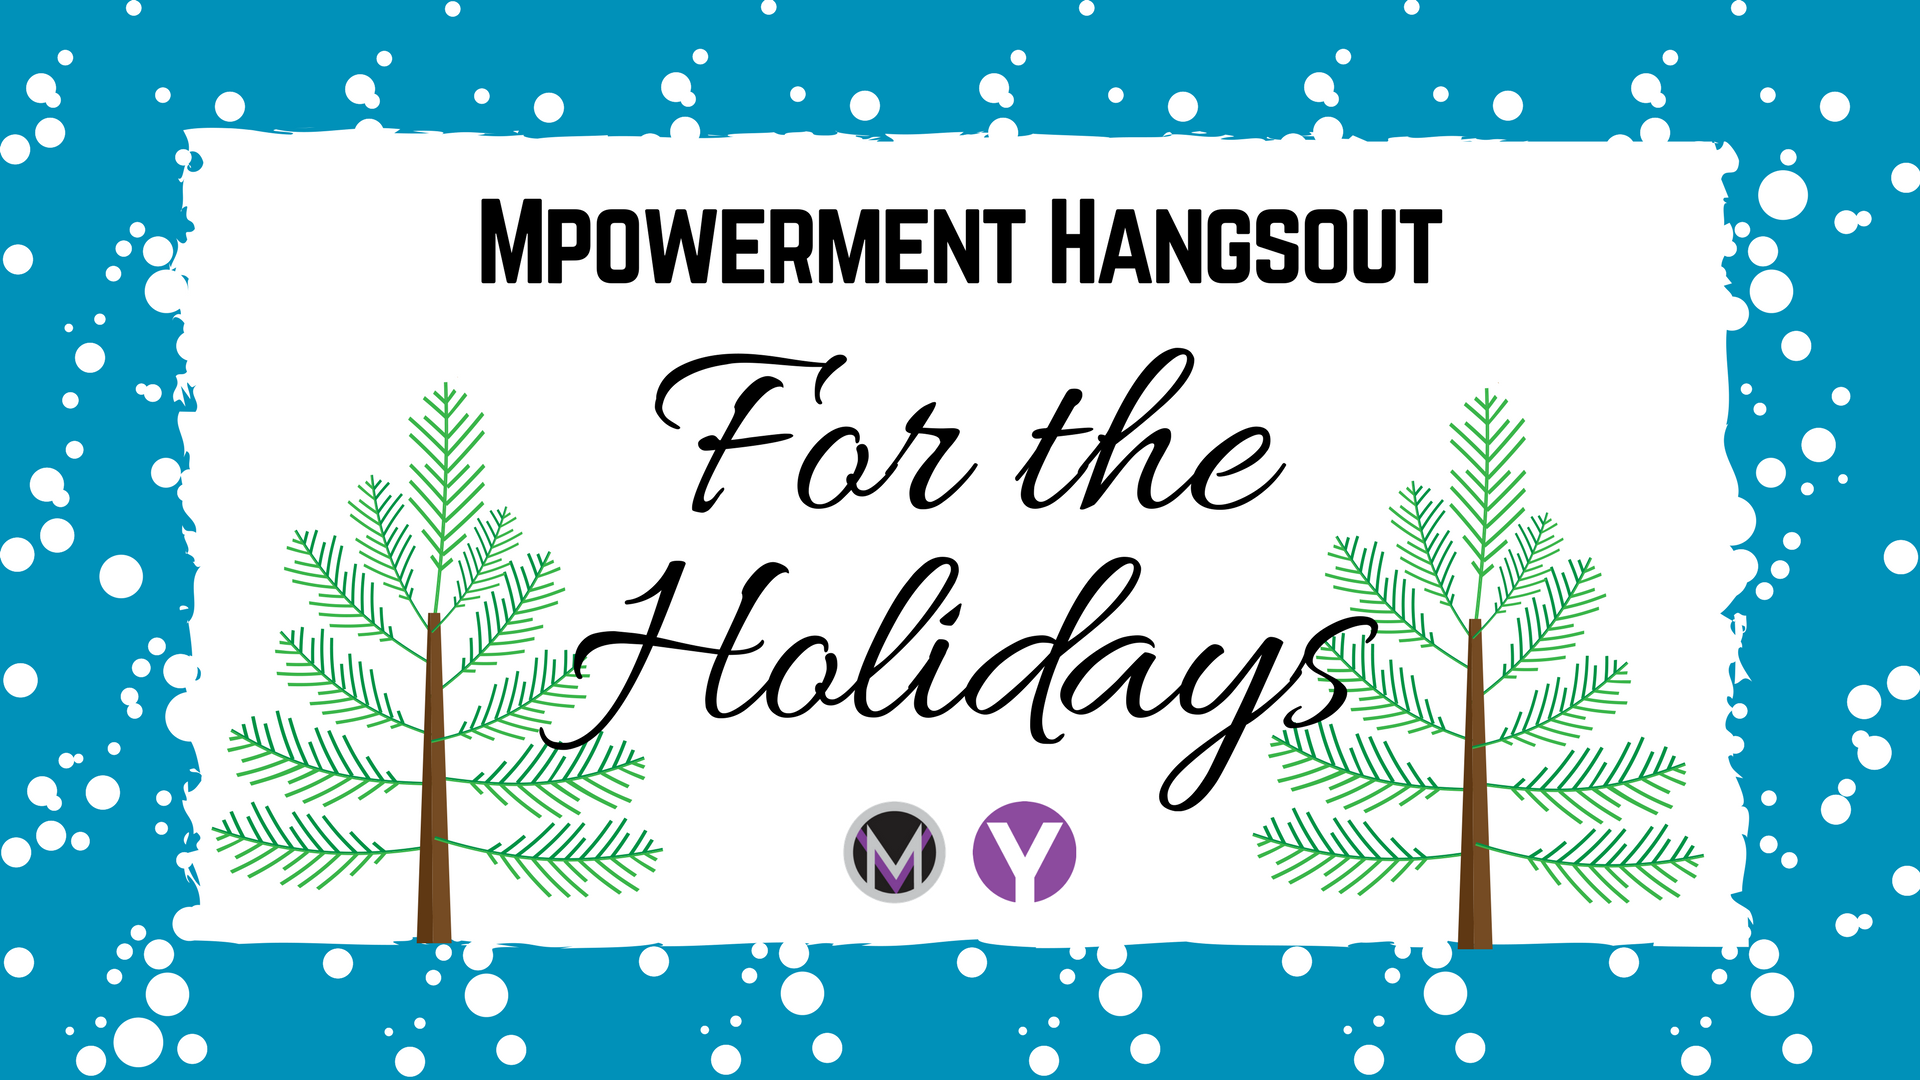 Facebook_Cover_Mpowerment_Hangsout_For_The_Holiday_201712.png